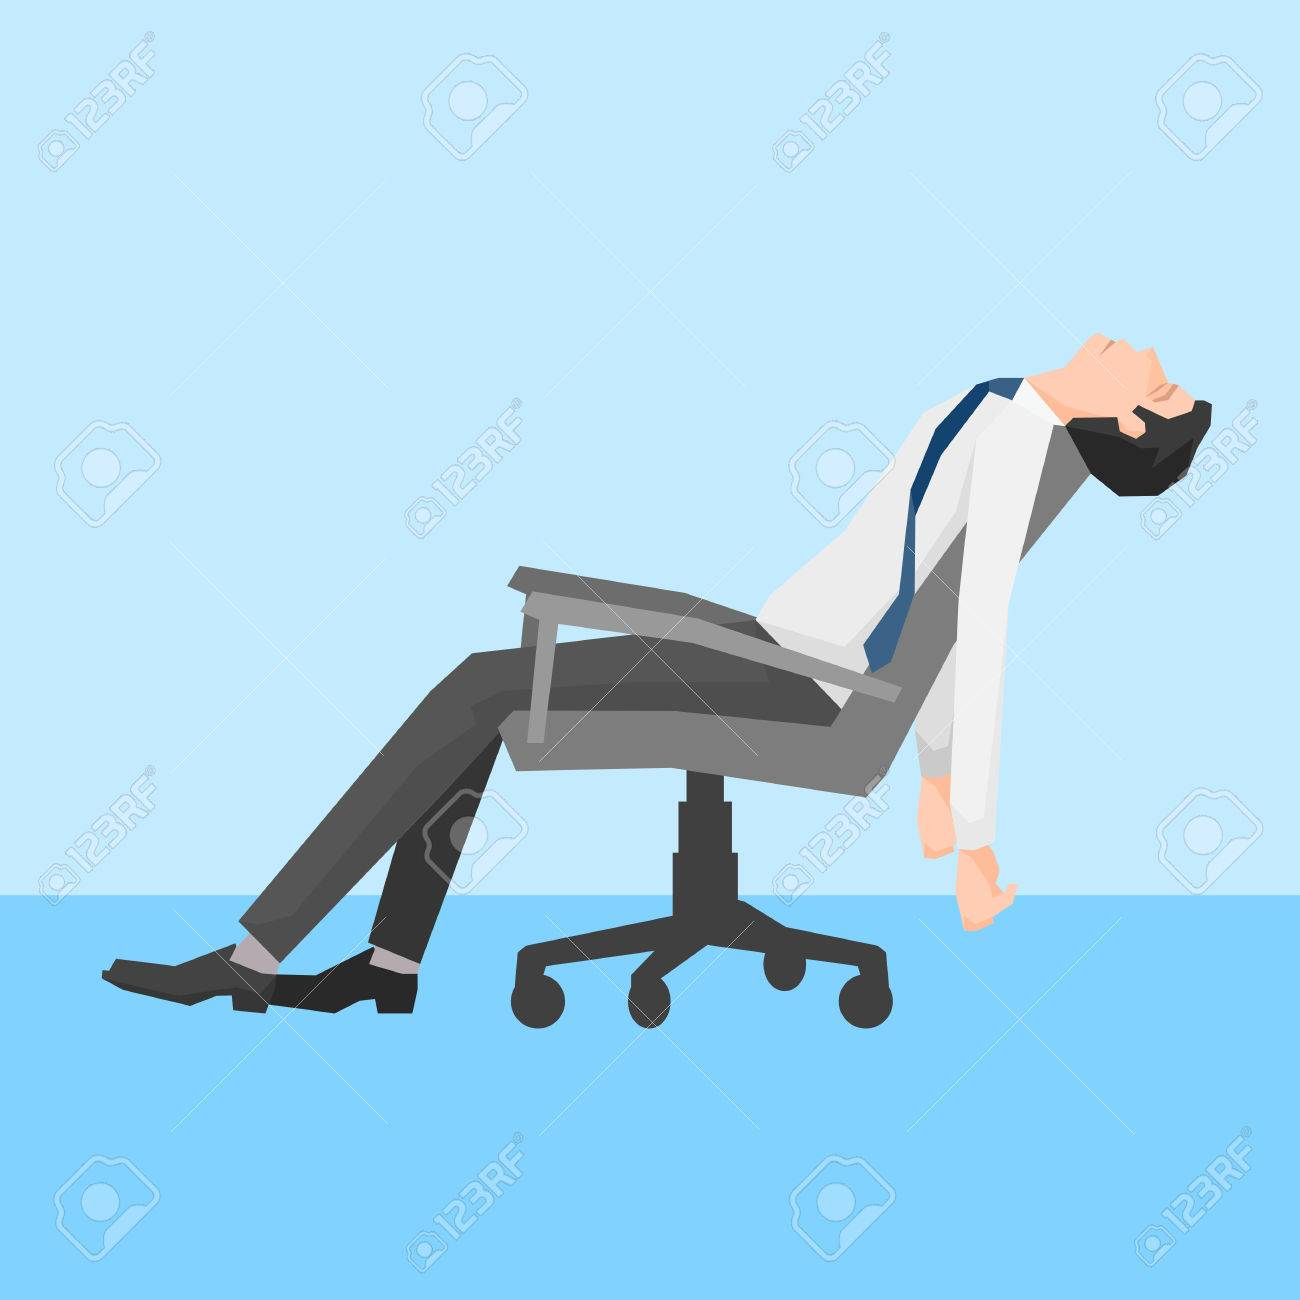 A man exhausted on a chair, simple design, vector illustration. - 45052020